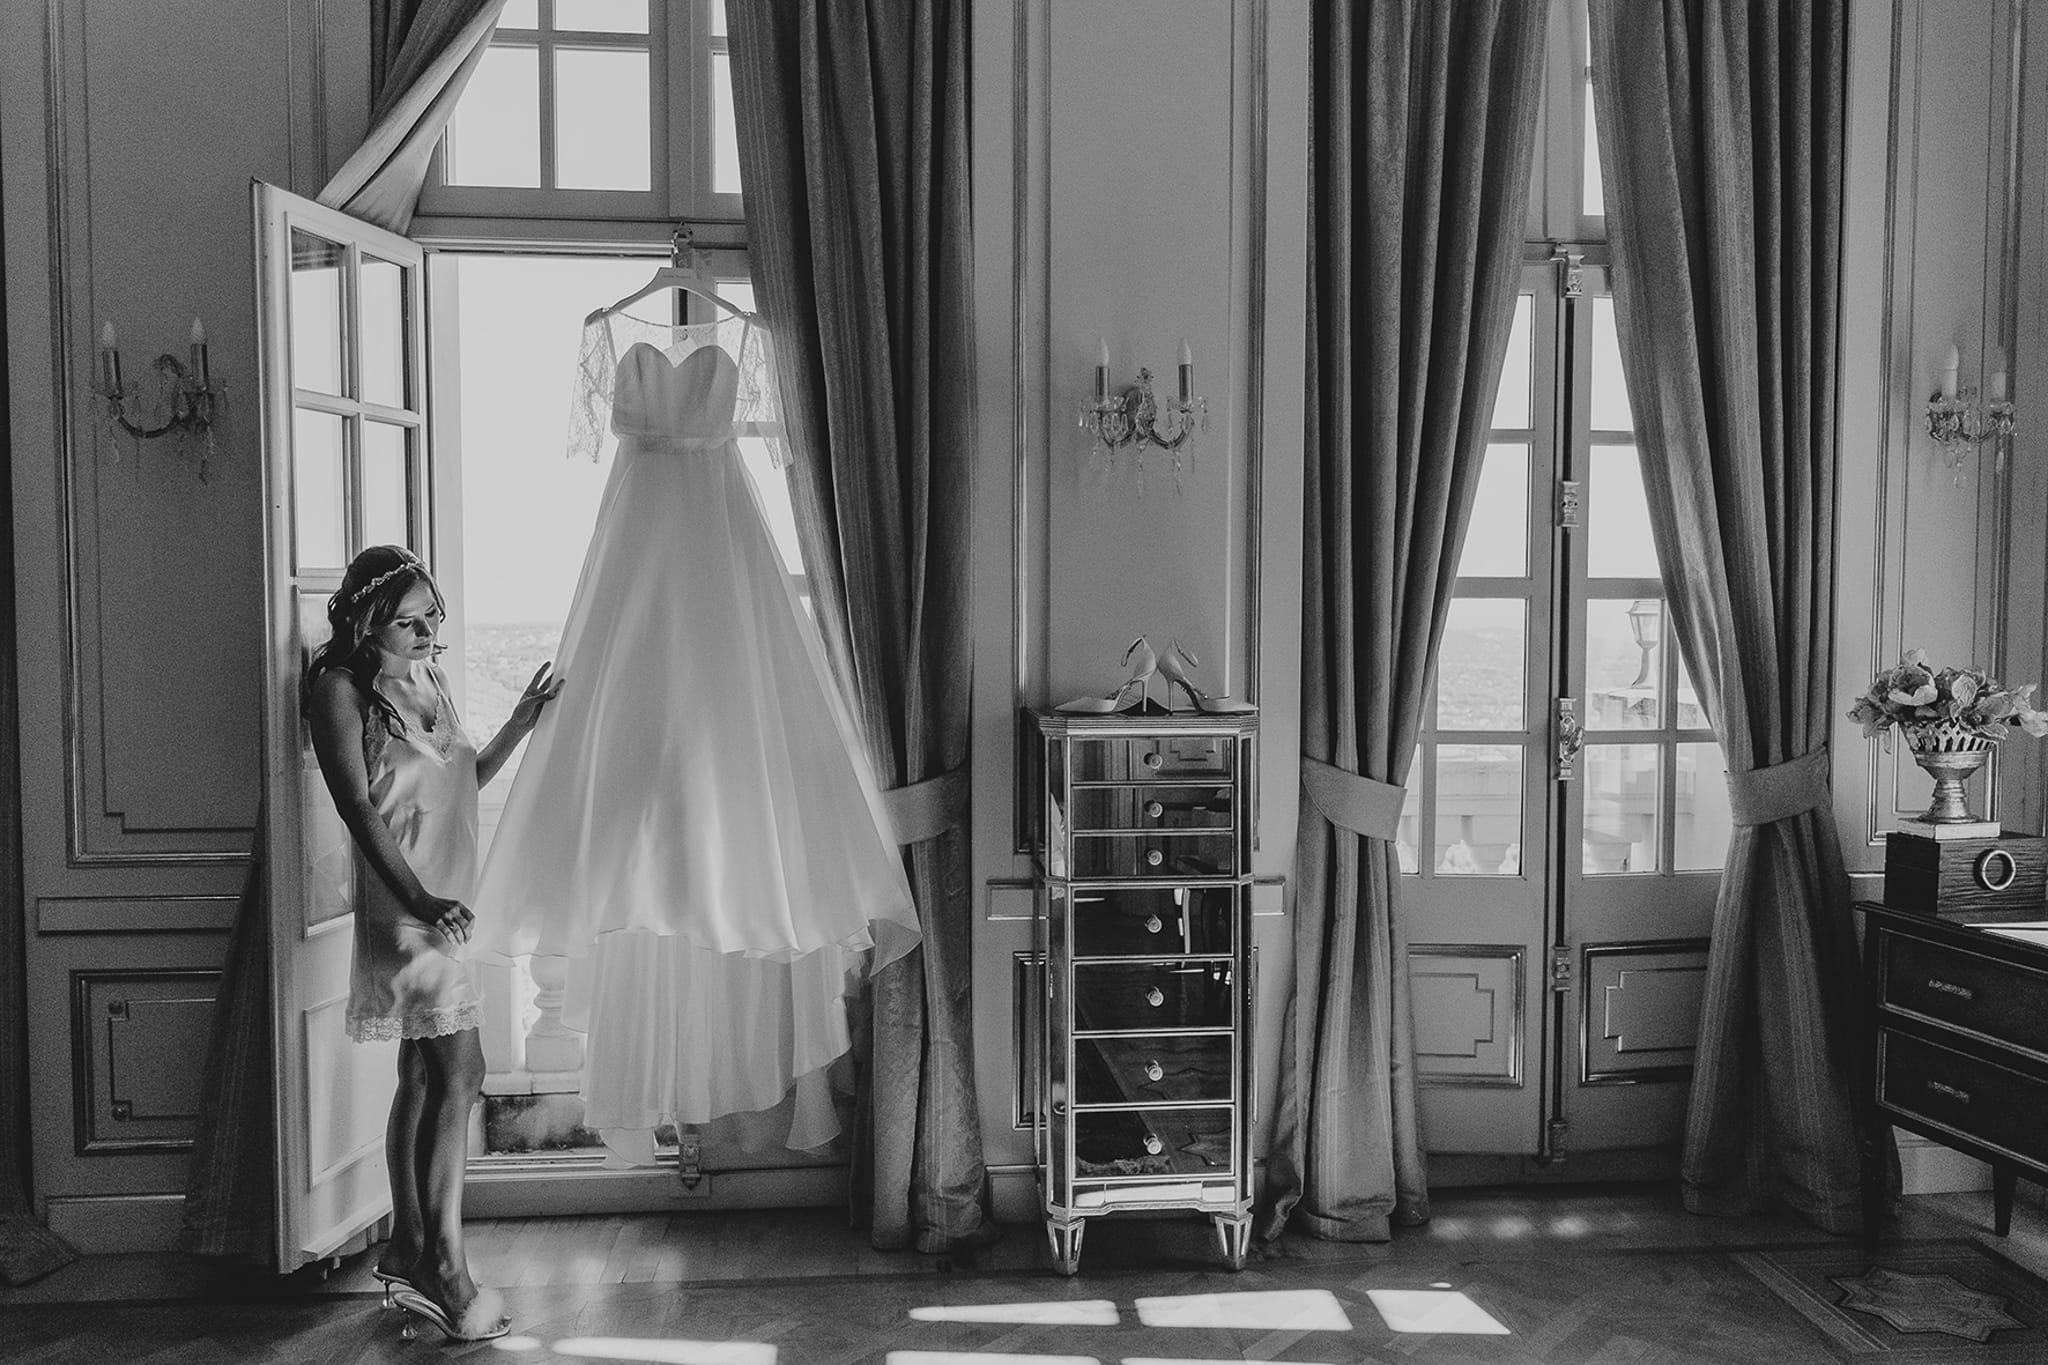 Costi-Moiceanu-Photographer-CM-Photography-Wedding-Mariage-French-Riviera-Cote-D-Azur-Alpes-Maritimes-42